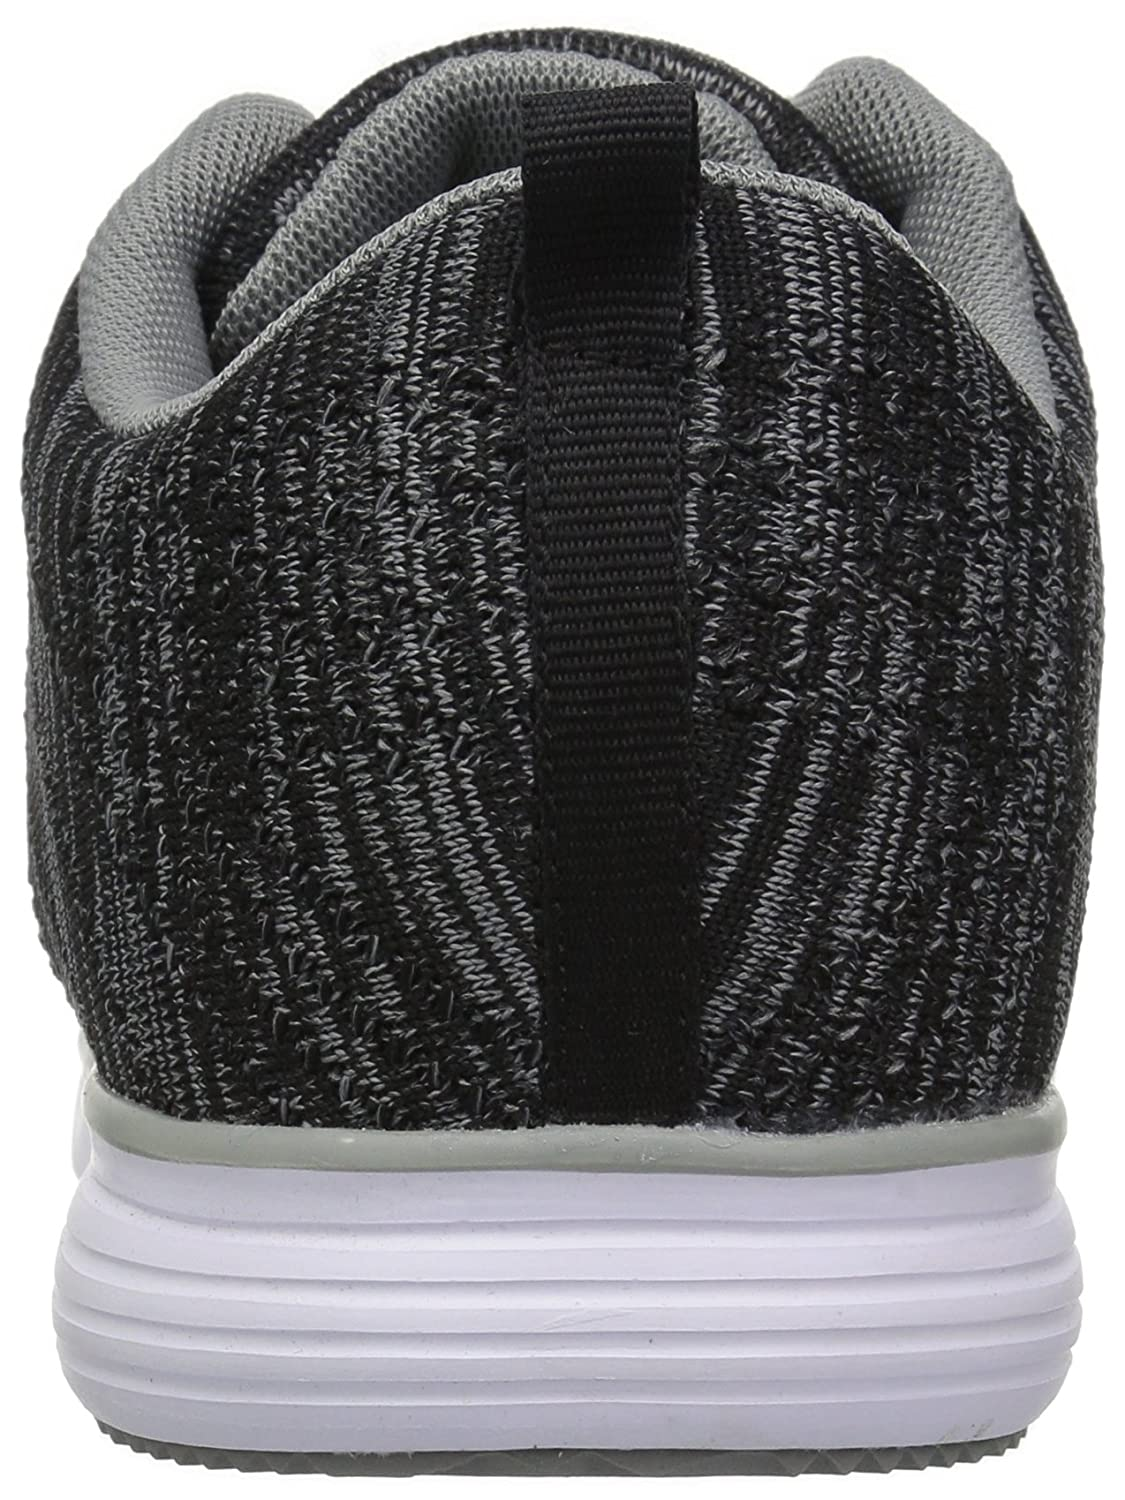 Propét Women's TravelFit Walking Shoe B01IODYKP0 6.5 W US|Black/Grey